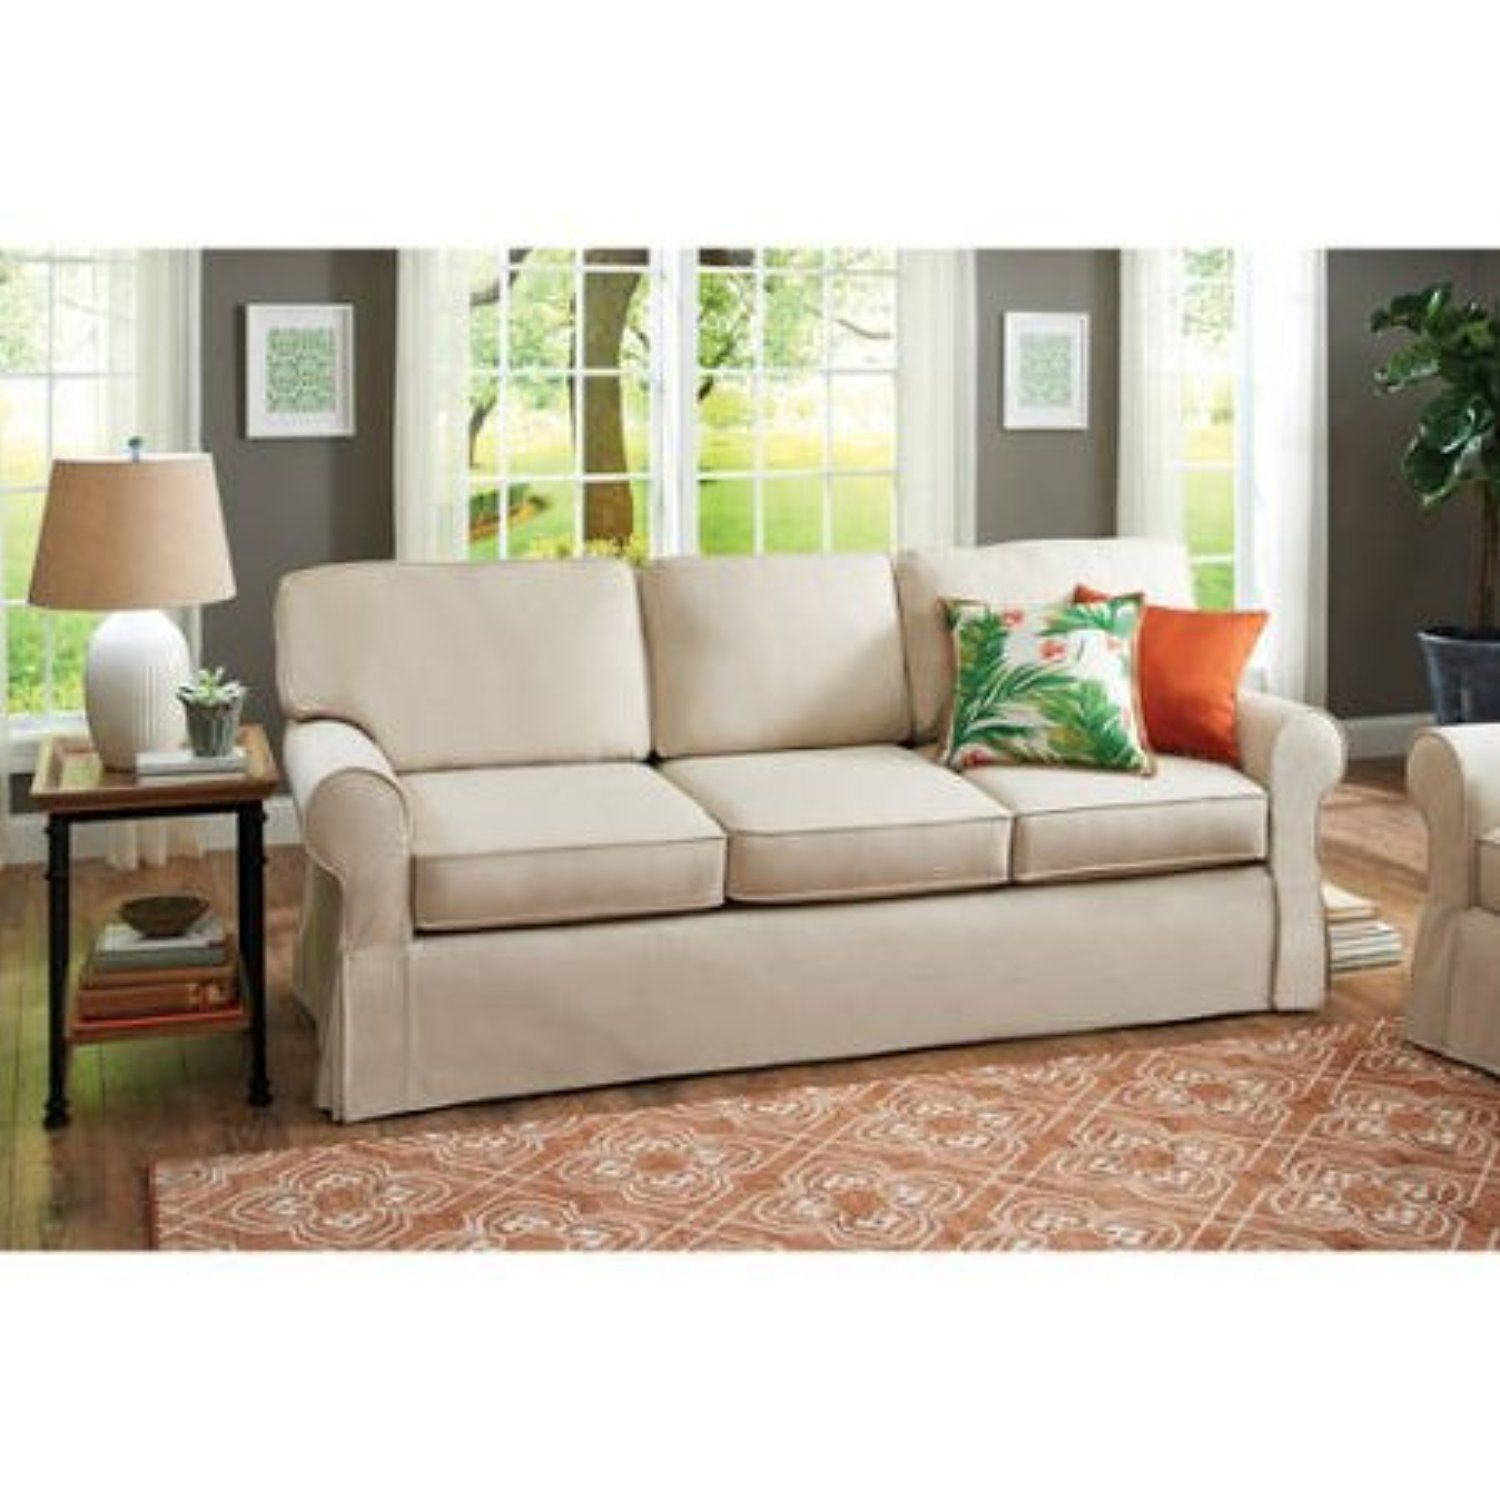 Better Homes And Gardens Slip Cover Pala Sofa Ivory Awesome